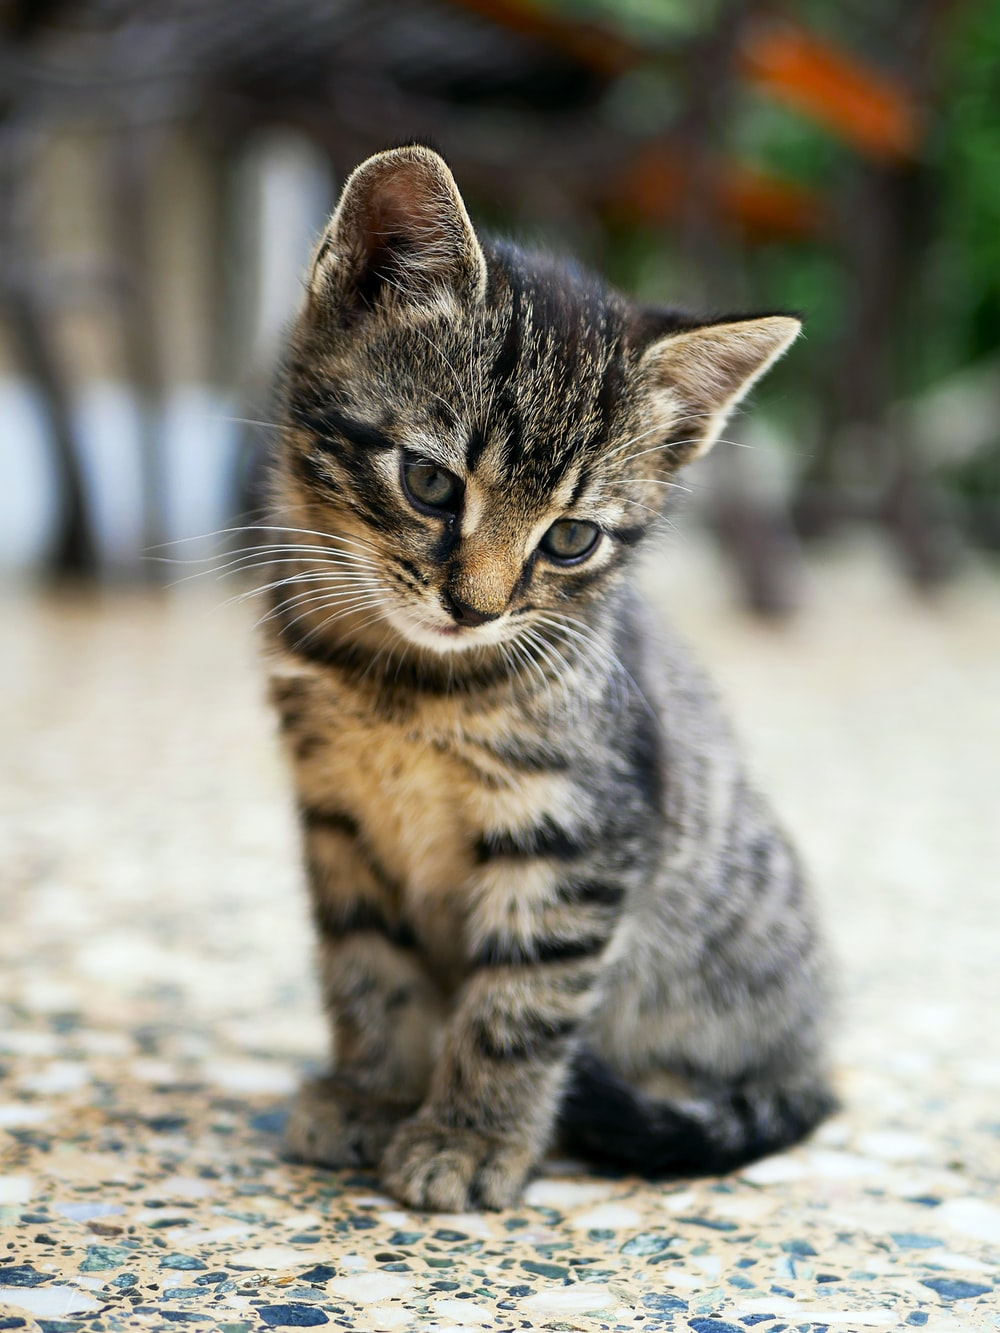 750 Cute Cat Pictures Download Free Images On Unsplash